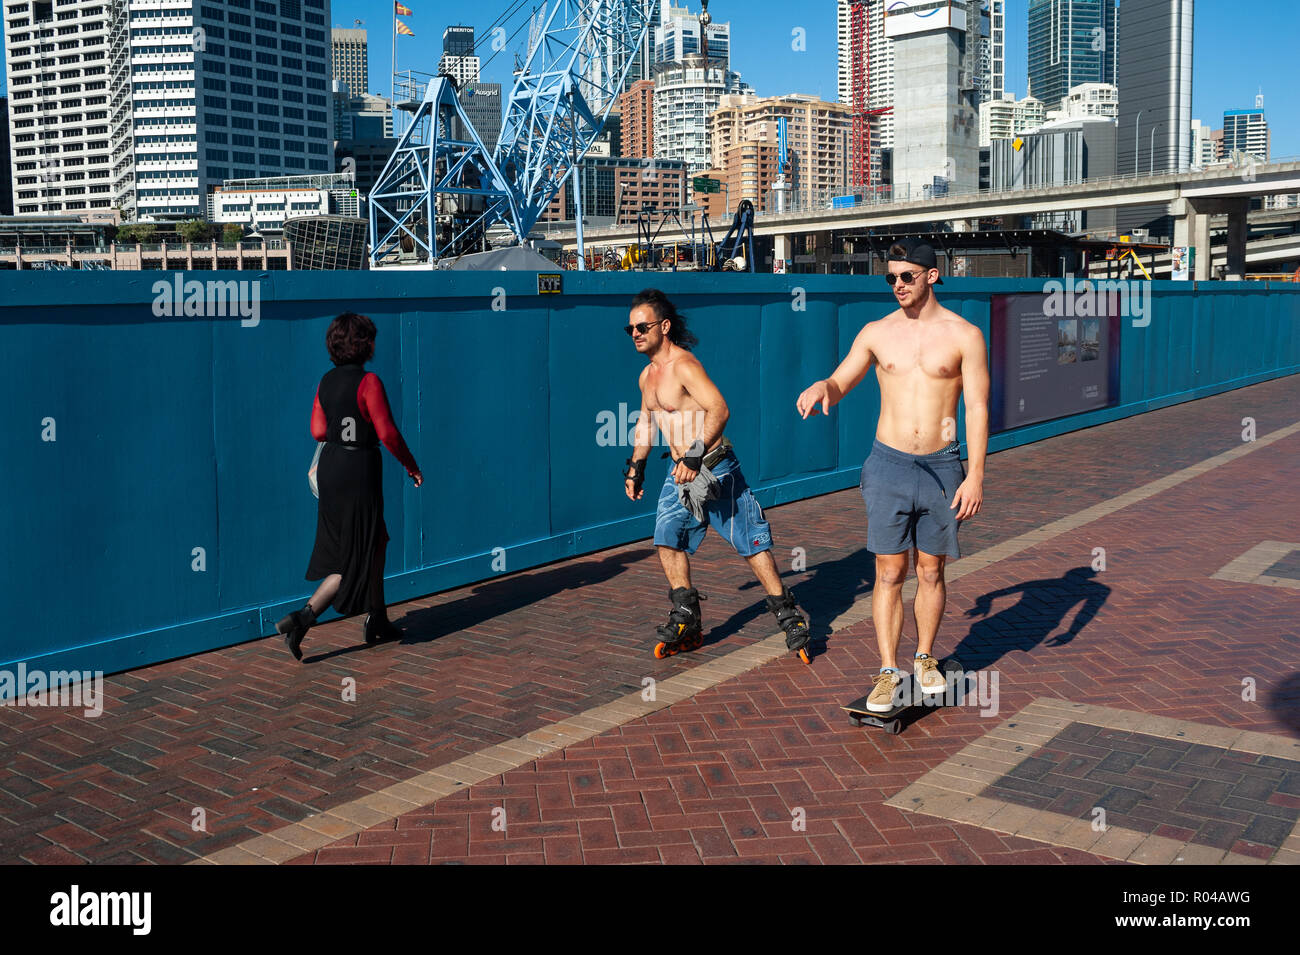 Sydney, Australia, skating at Darling Harbour - Stock Image